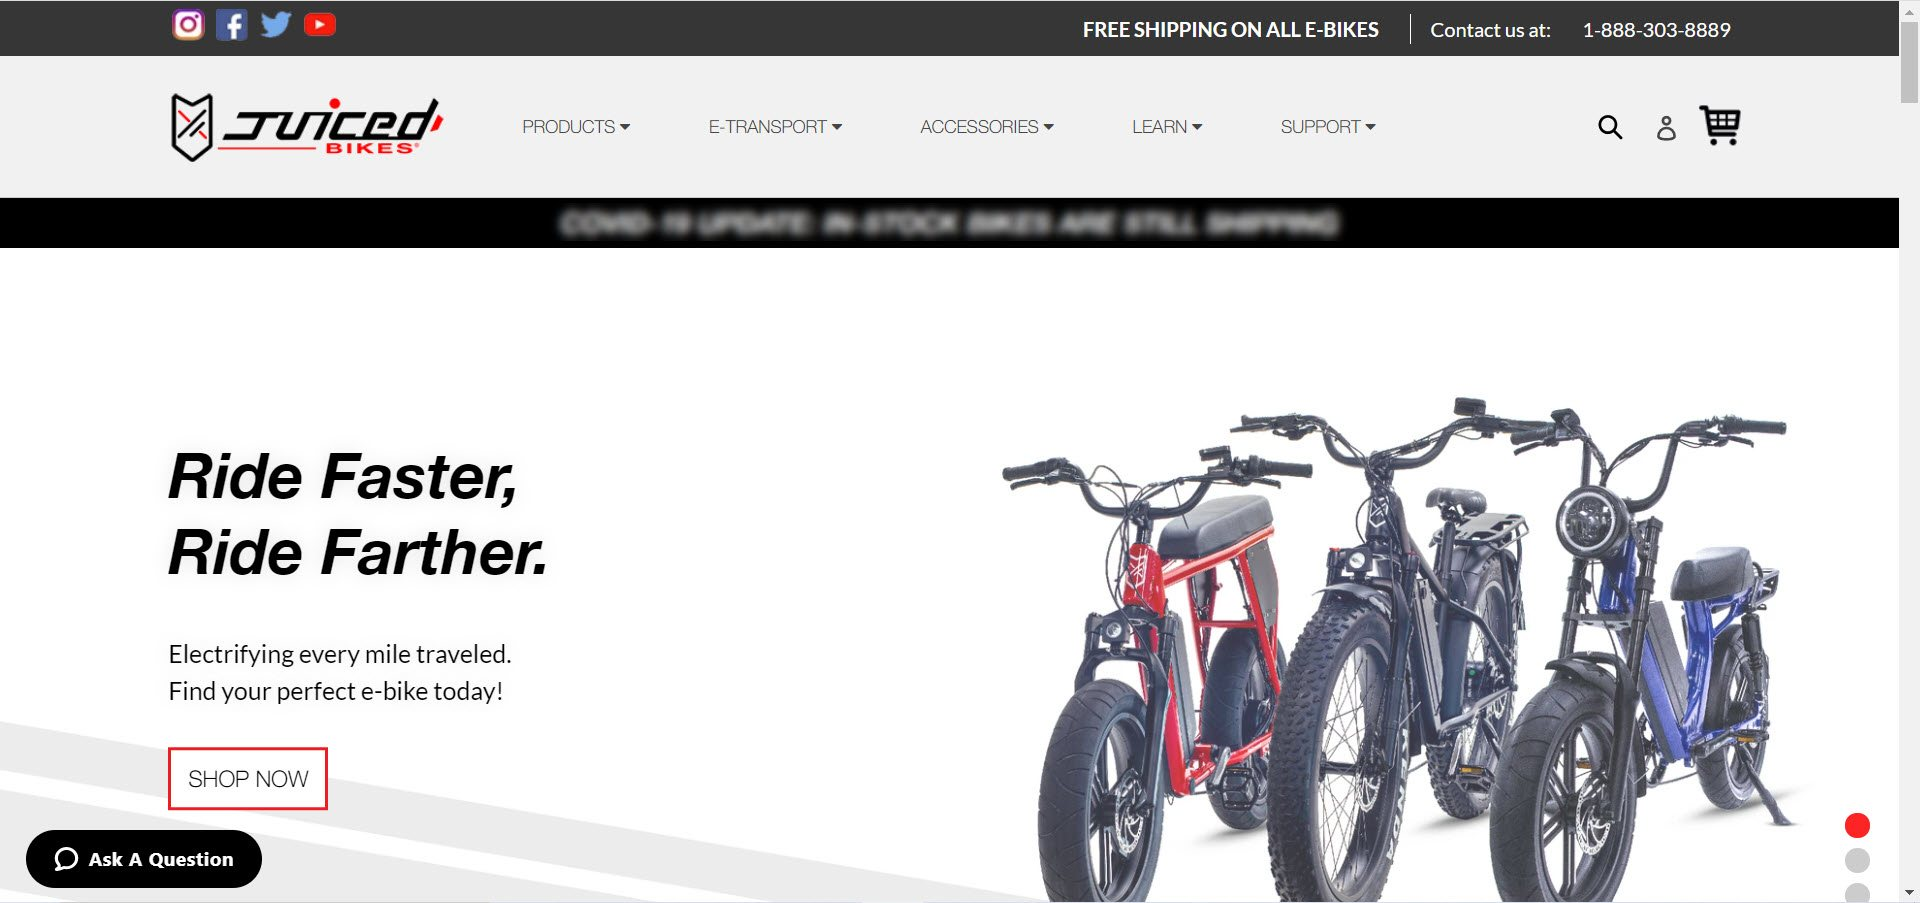 Bicycle Affiliate Program - juiced bikes